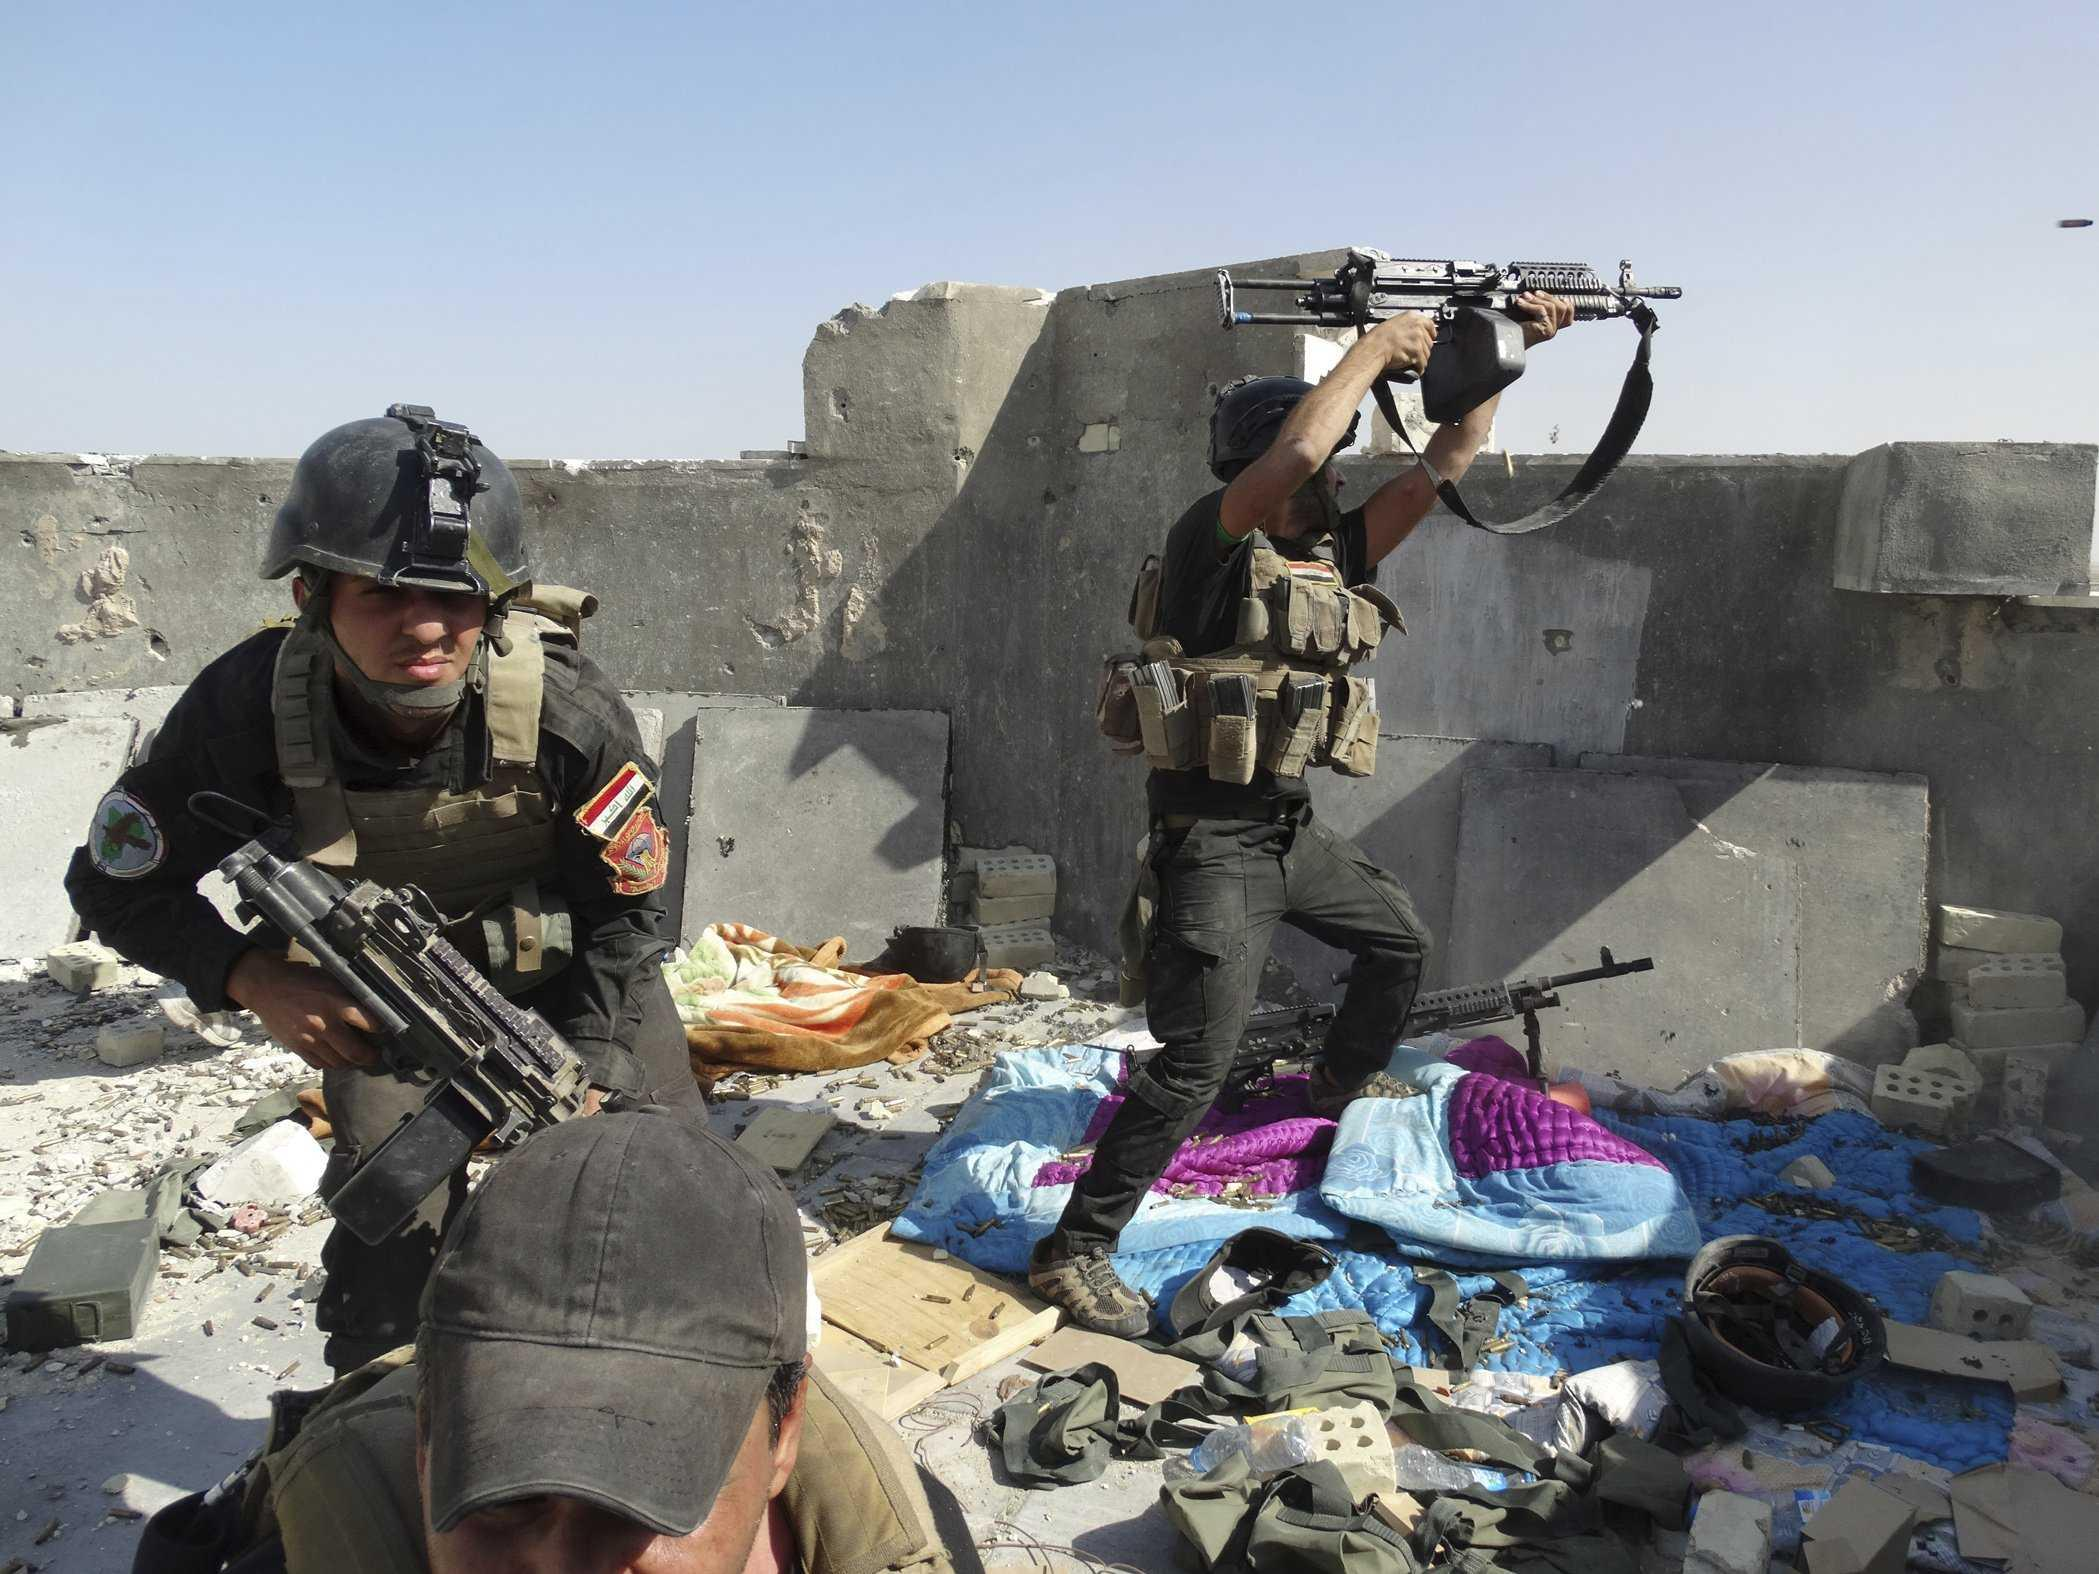 Iraq's incompetent military is in even worse shape than it appears